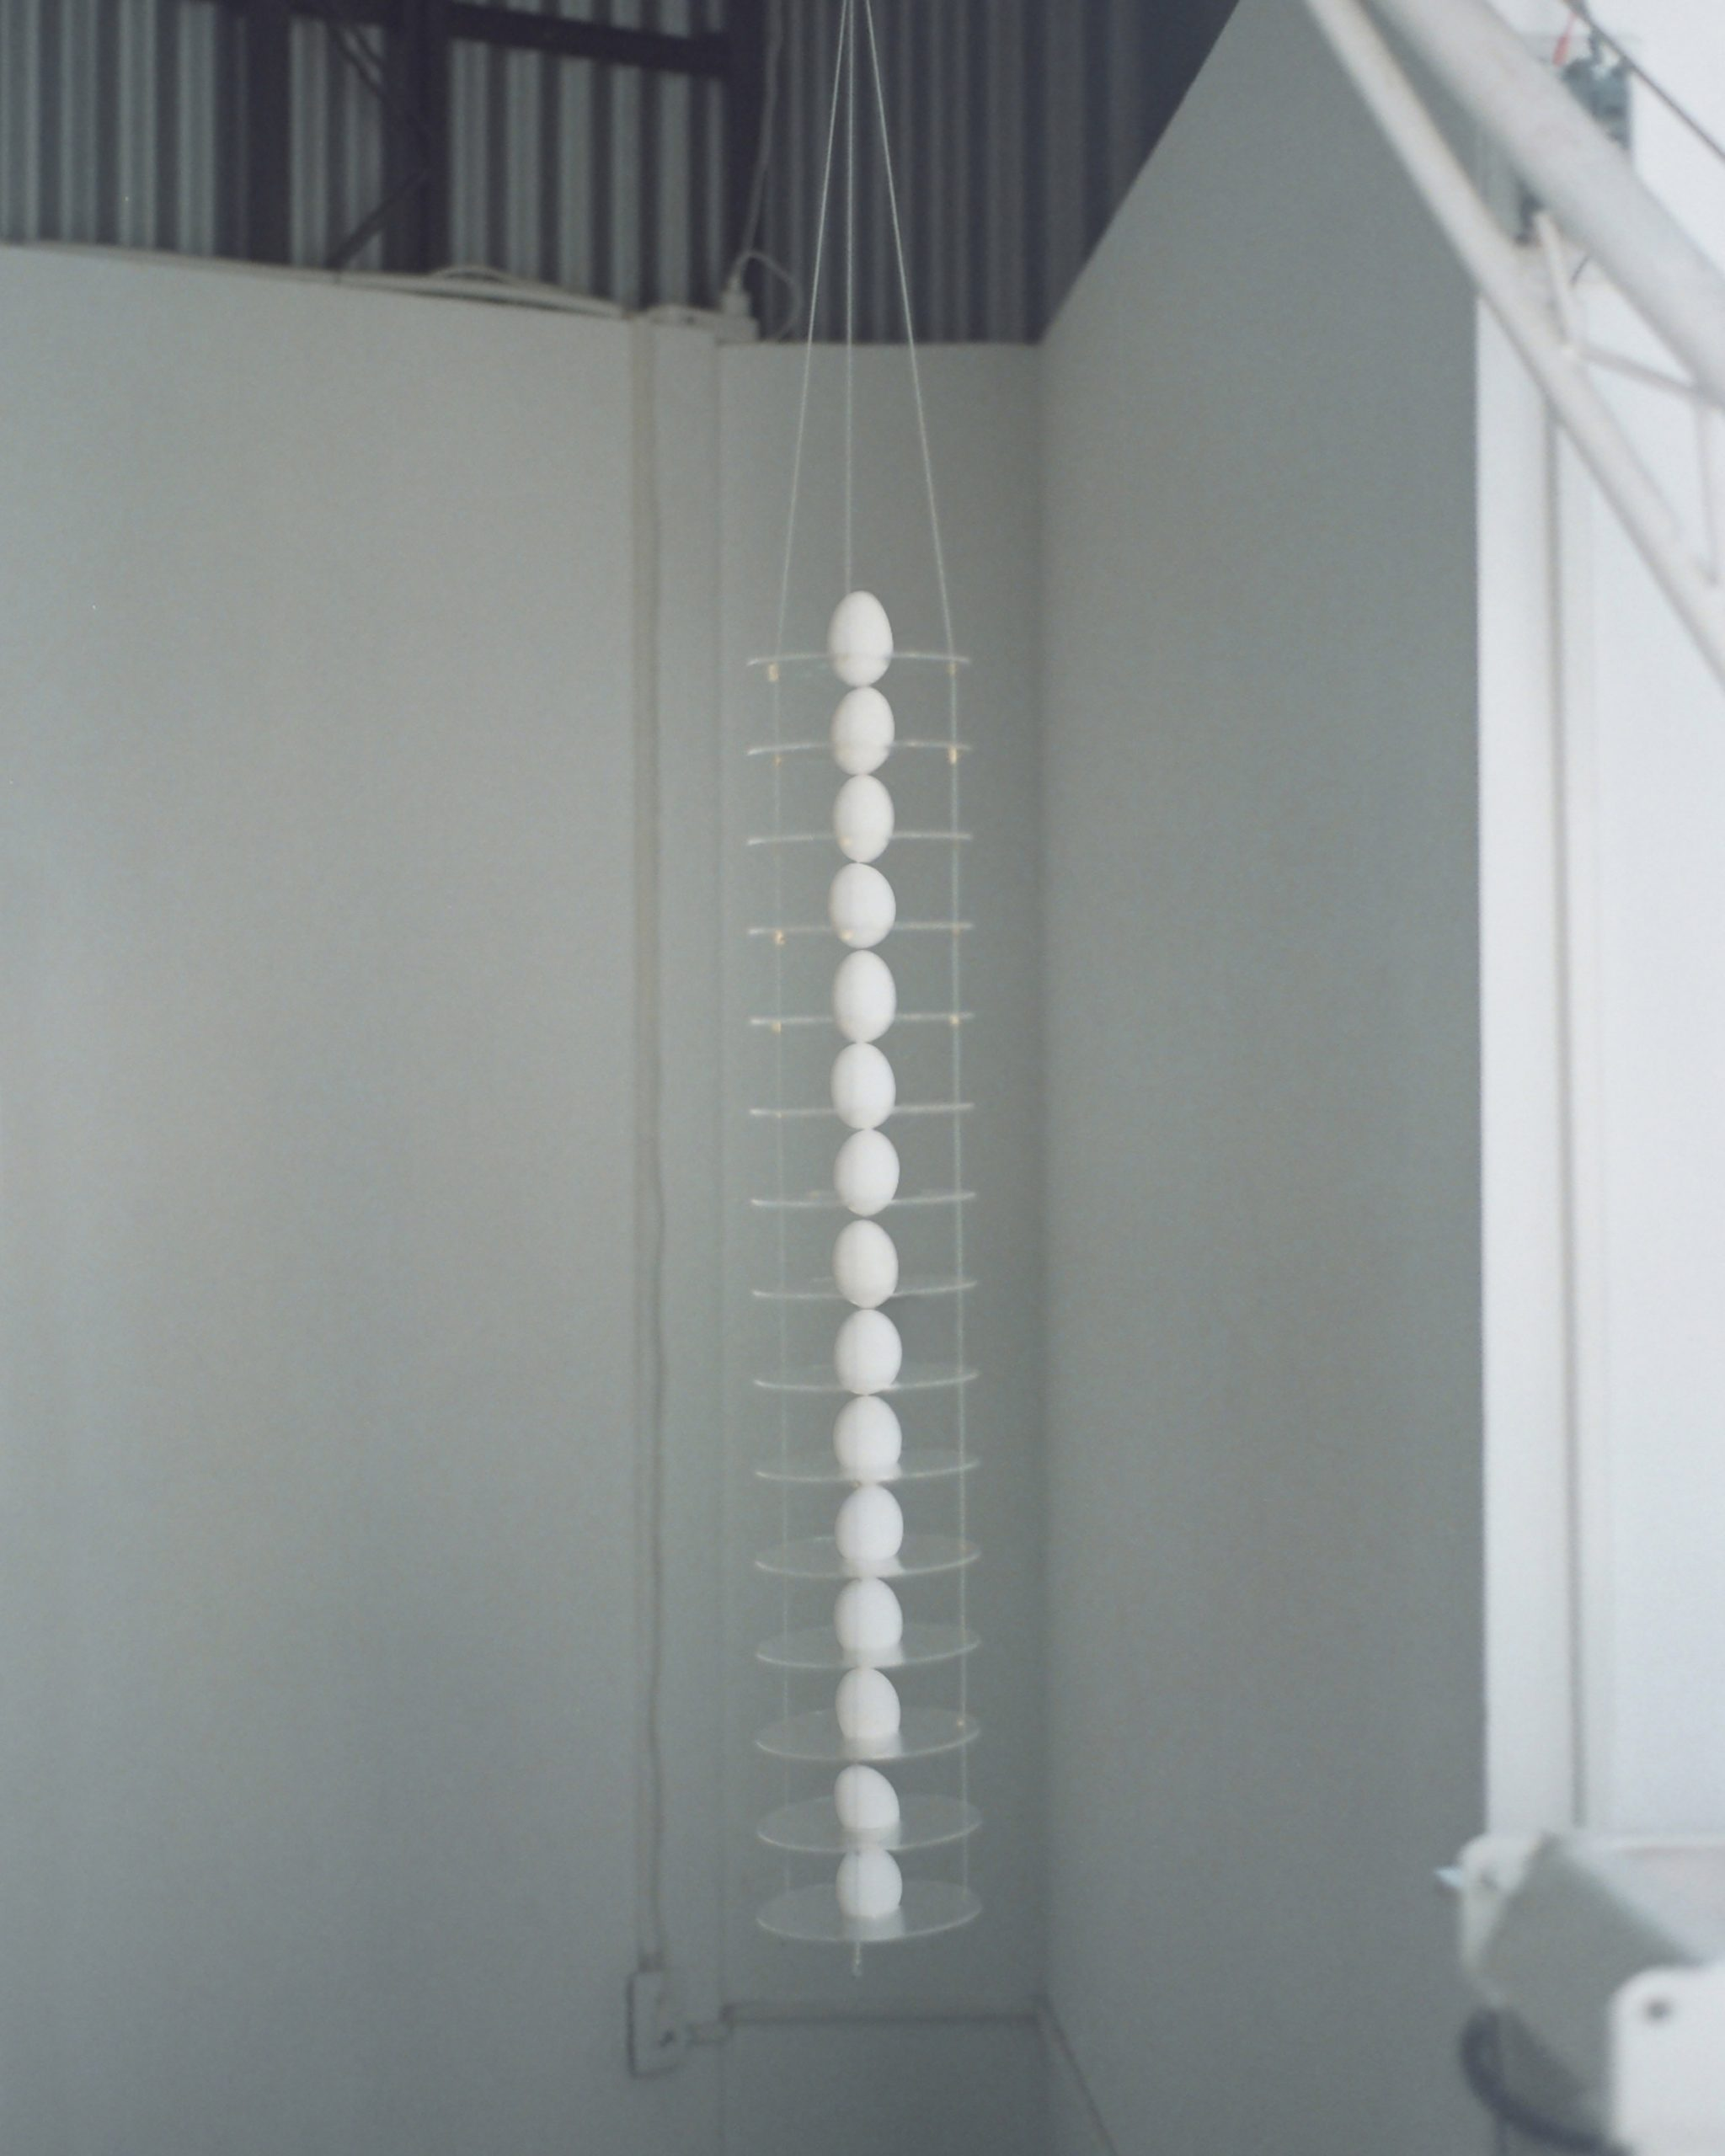 Egg Rack #10 from The Egg Rack Made a Disclaimer by Liang-Jung Chen